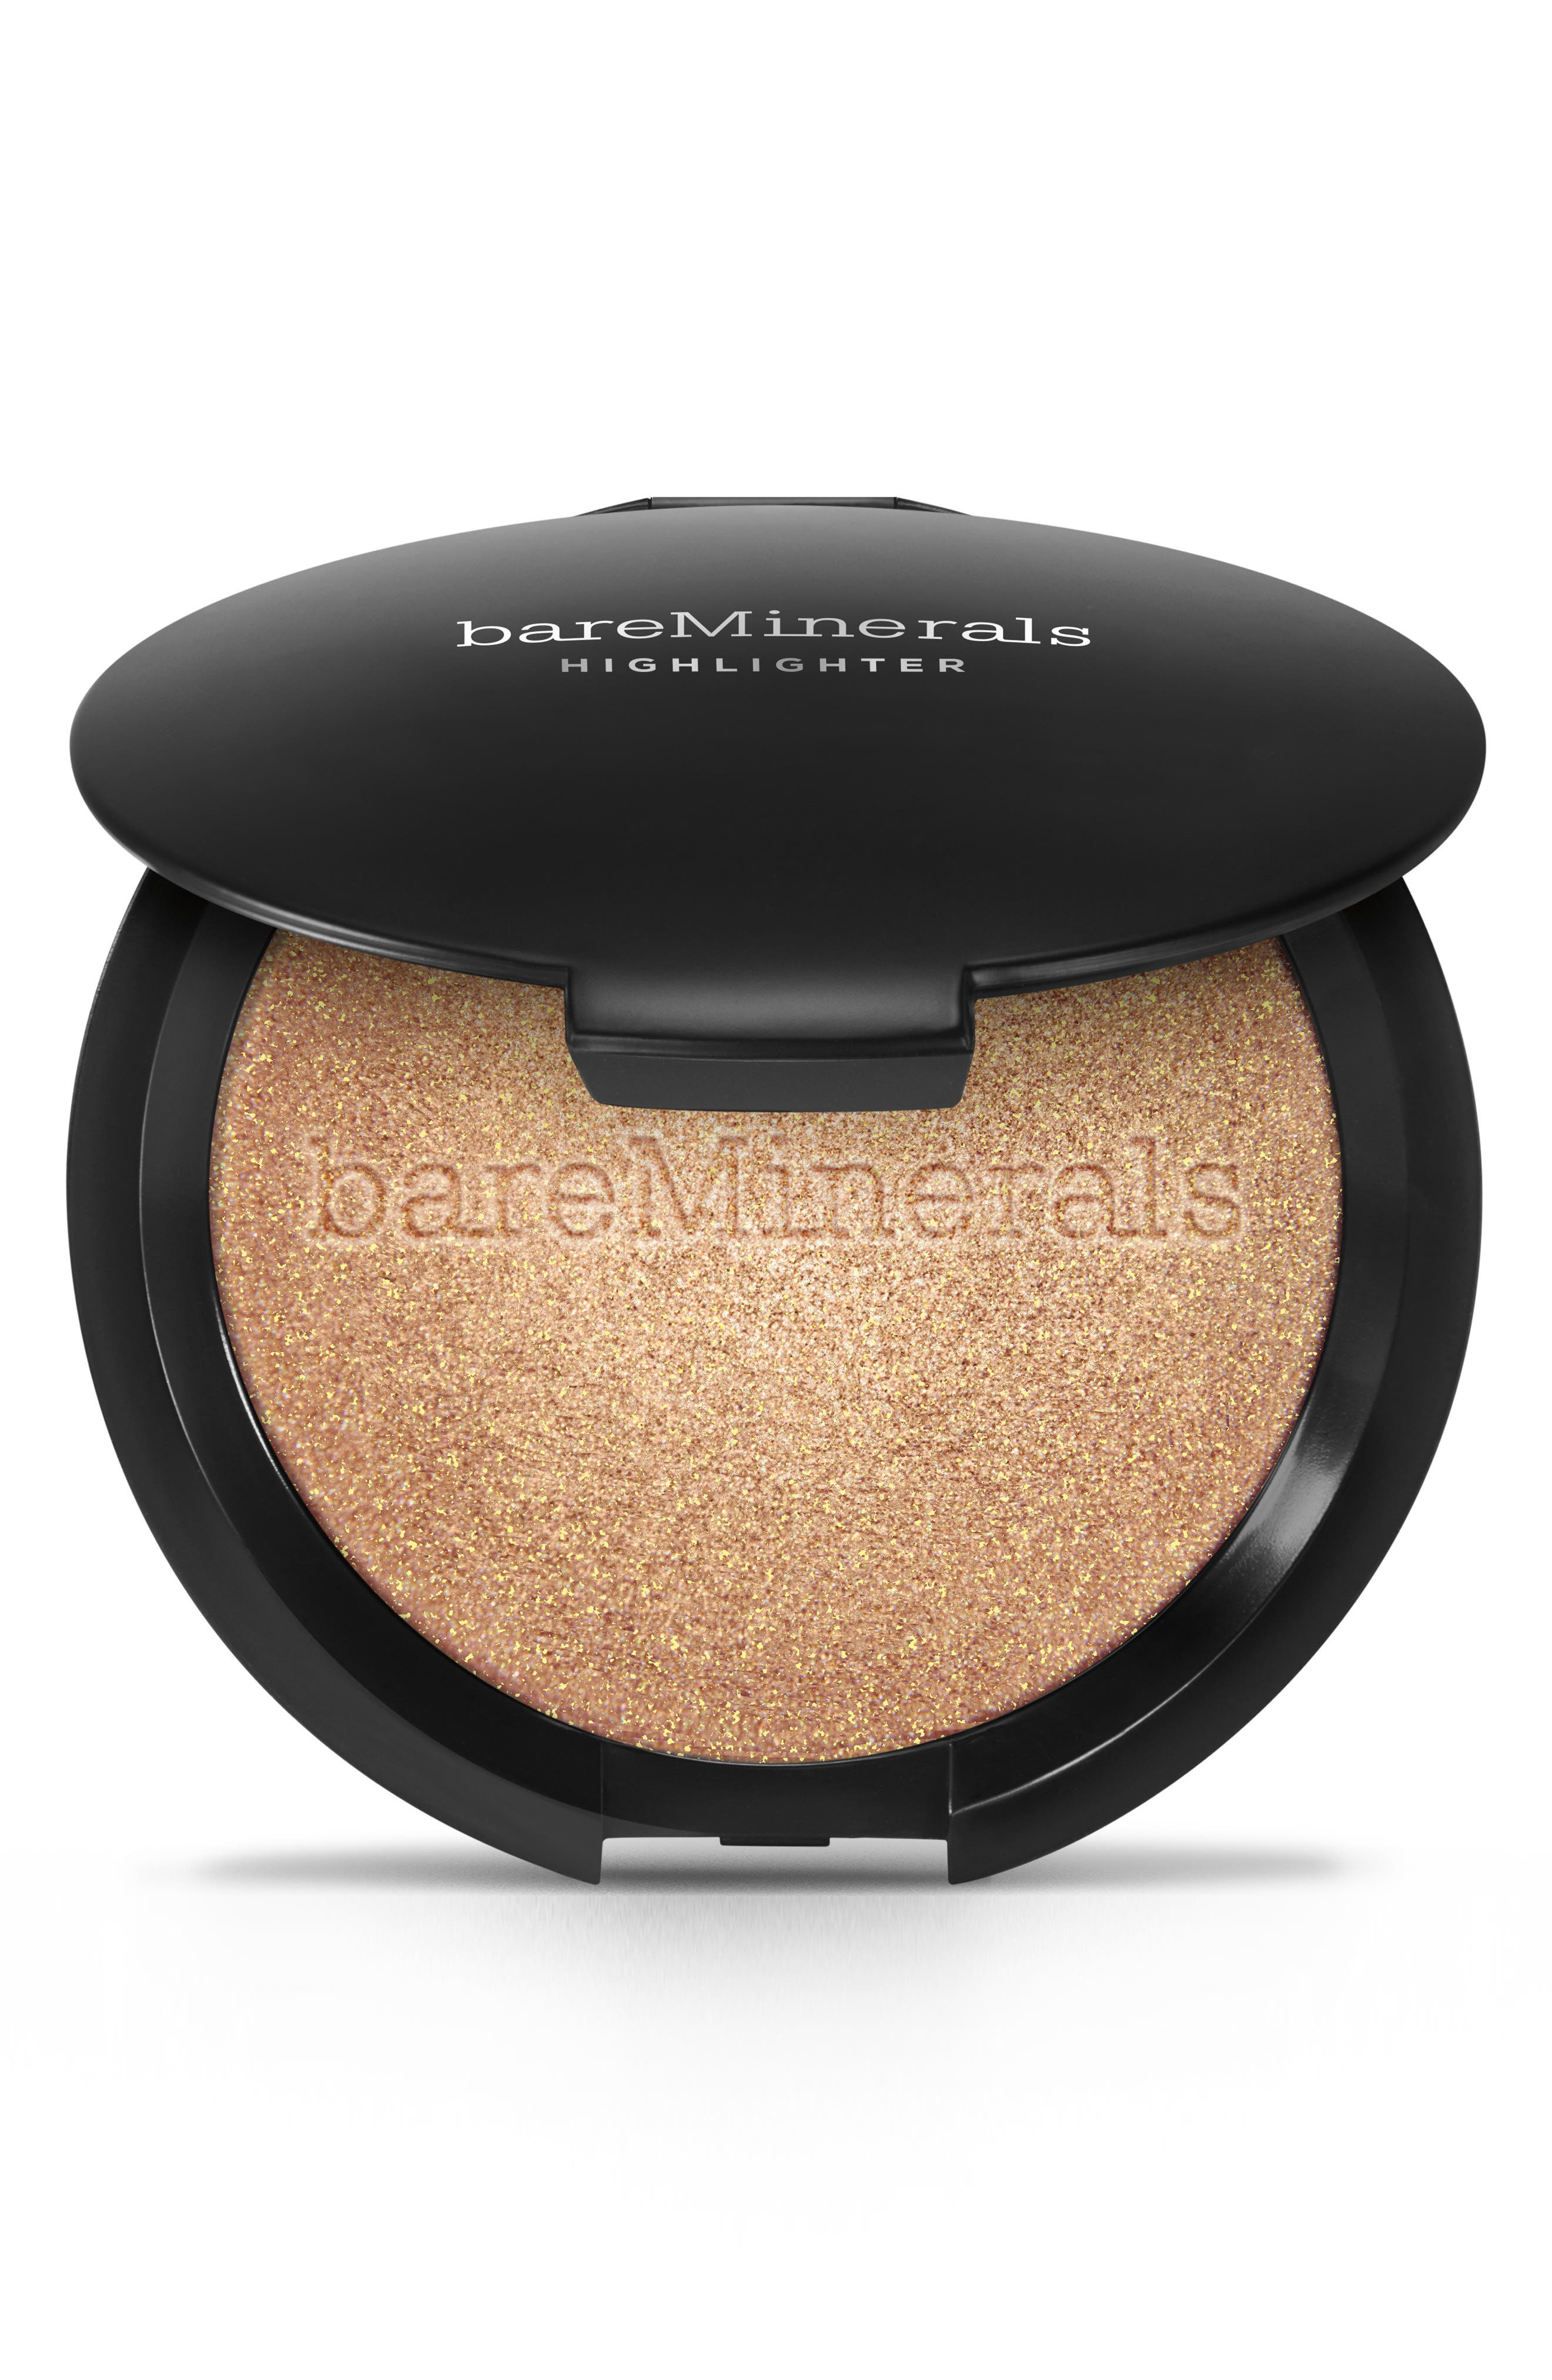 What it is: A mineral-based powder highlighter that gives skin a naturally luminous, dew-kissed glow while blurring pores and imperfections. What it does: This cleanly formulated powder provides long-lasting, lit-from-within luminosity with a photo-ready finish that won\\\'t crease, cake or crack. Research results: In an independent consumer study of 32 women:- 81% said skin looked smoother- 75% said skin was plump and full- 97% agreed it did not